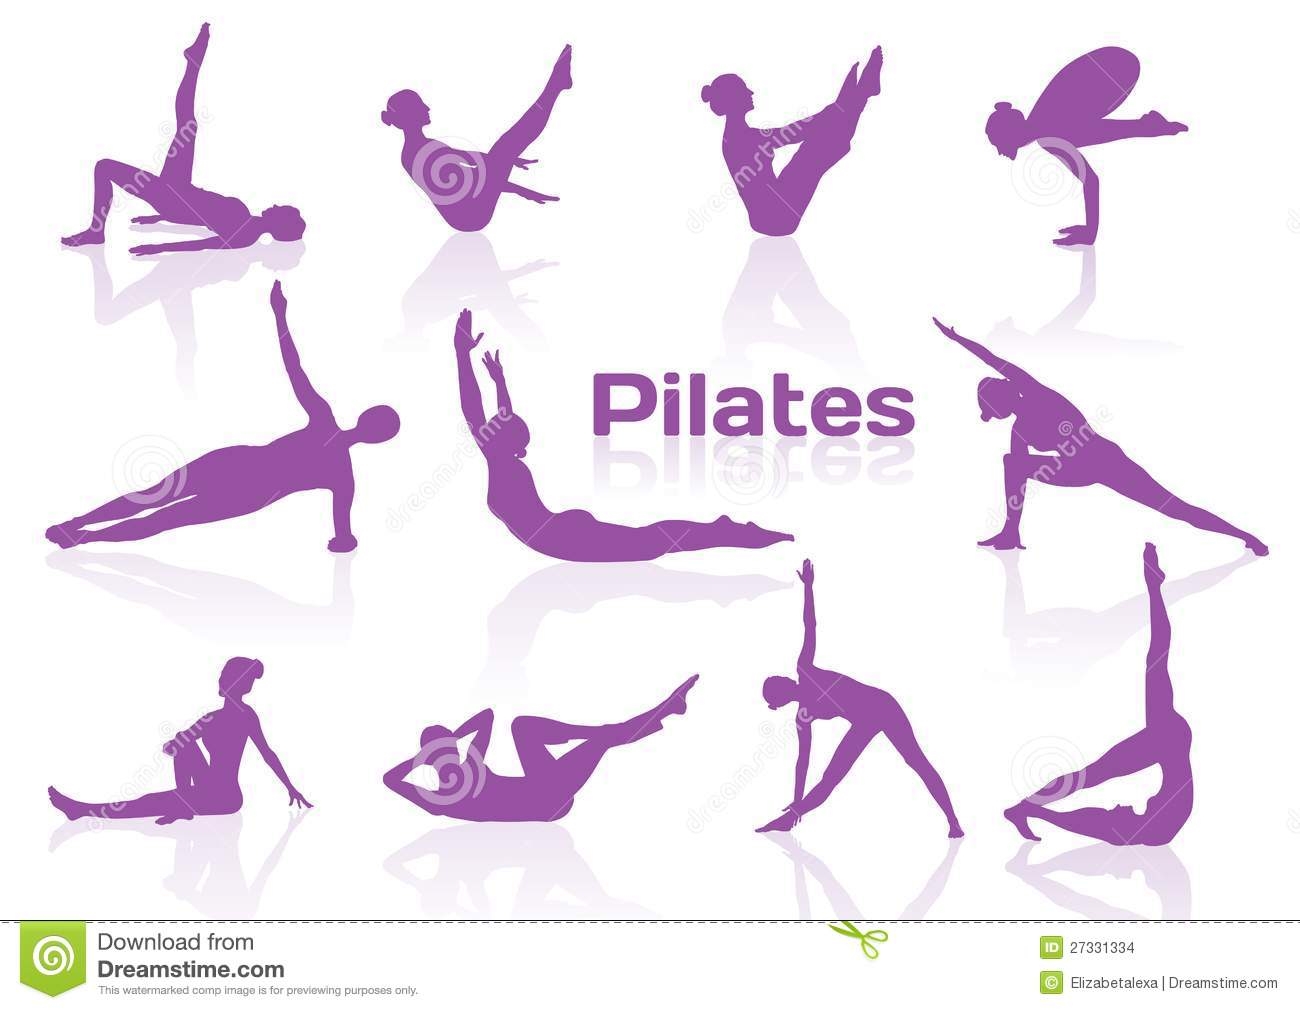 Pilates Poses In Violet Silhouettes Stock Images - Image: 27331334